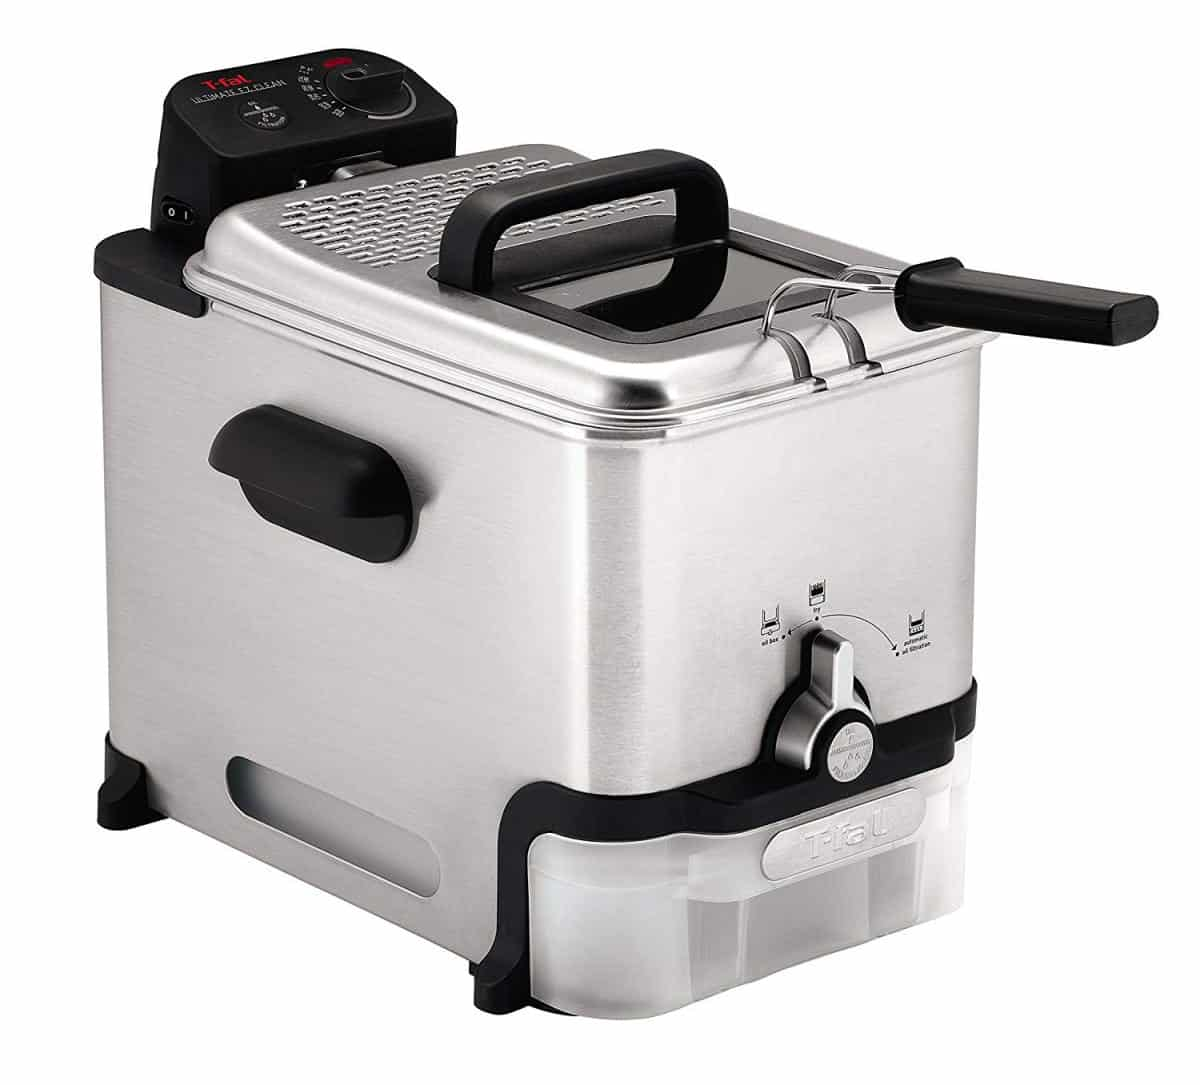 T-Fal Deep Fryer | Hey Alexa, Get These 21 Kitchen Appliances On Amazon